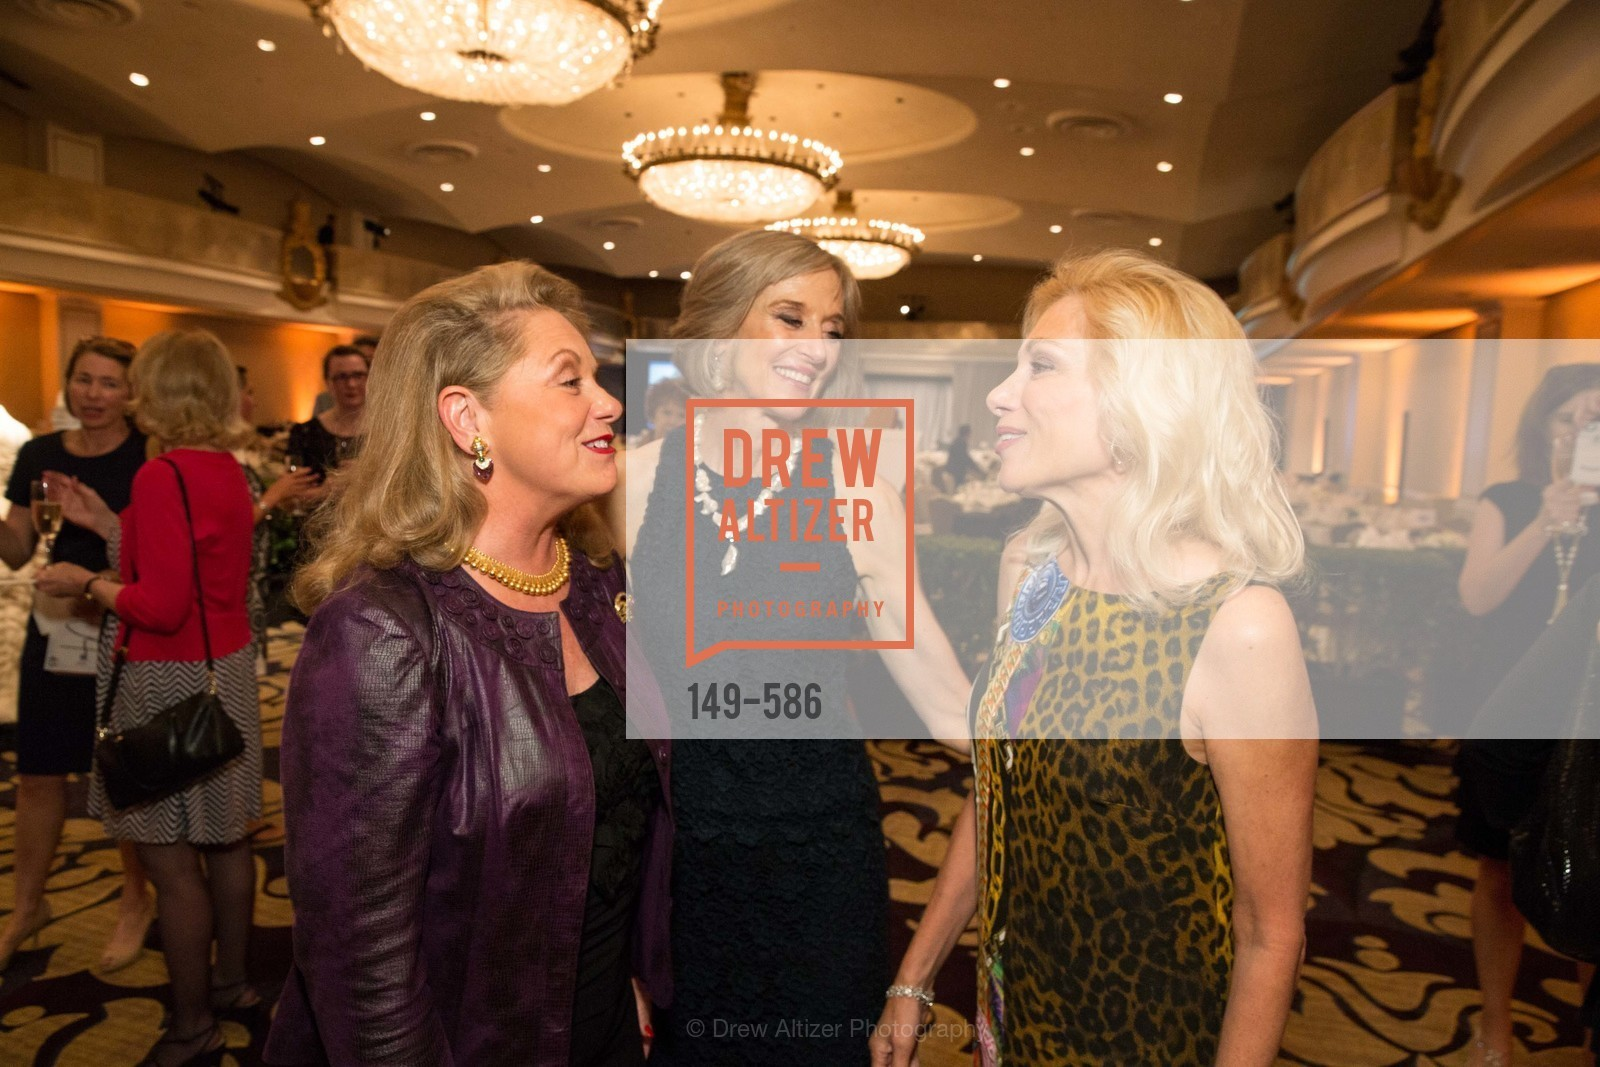 Jill Toth, PJ Handeland, Cynthia Schreuder, 2014 Bay Area ARTHRITIS AUXILLIARY Benefit & Fashion Show, US, October 1st, 2014,Drew Altizer, Drew Altizer Photography, full-service agency, private events, San Francisco photographer, photographer california